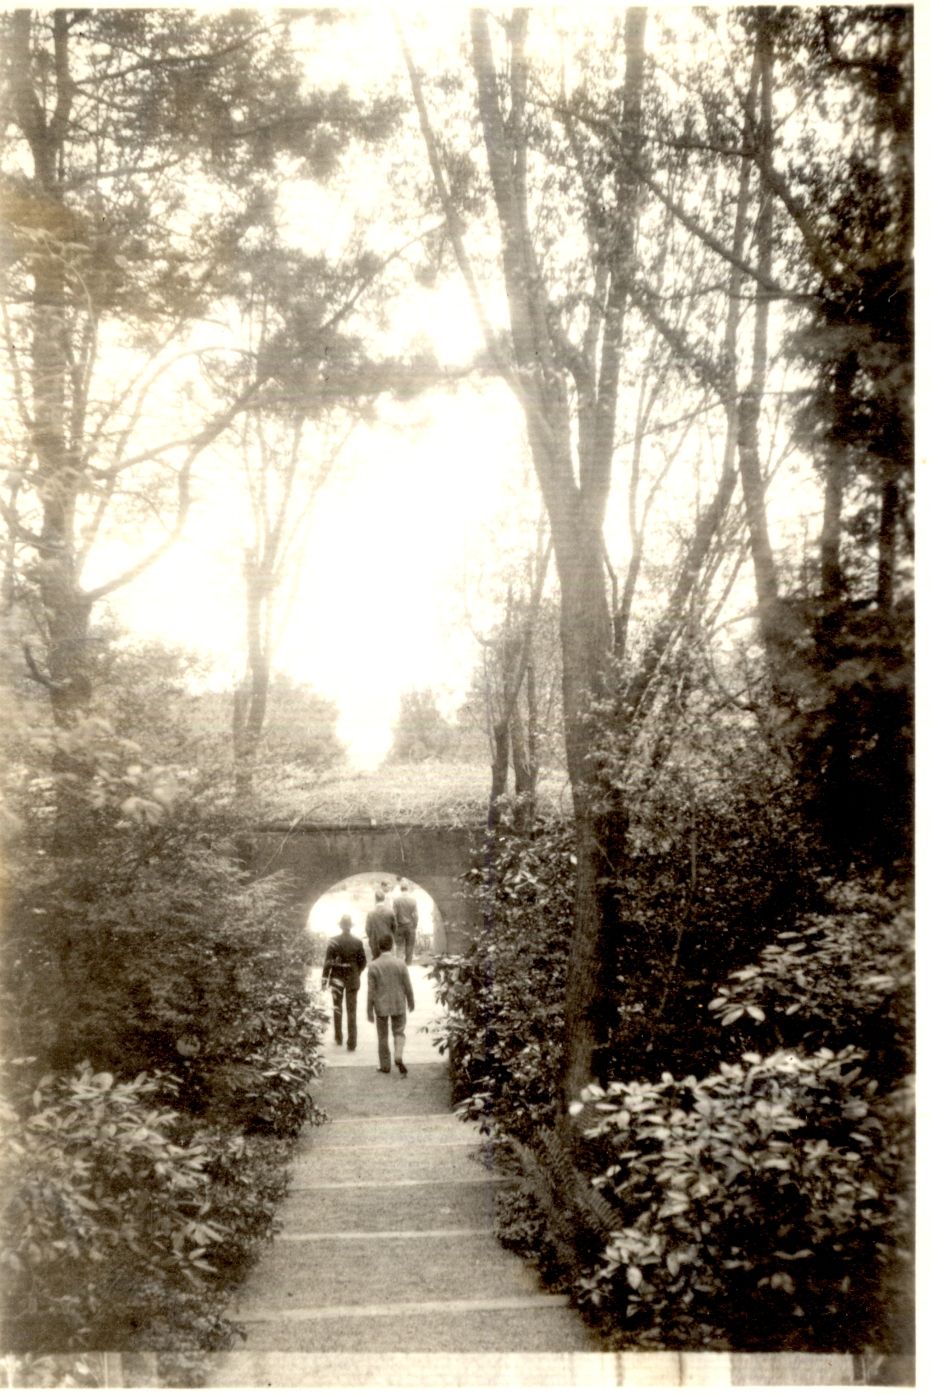 Vintage photo of path to Rose Garden, circa 1930s. Image courtesy of the Trustees of Reservations, Archives & Research Center